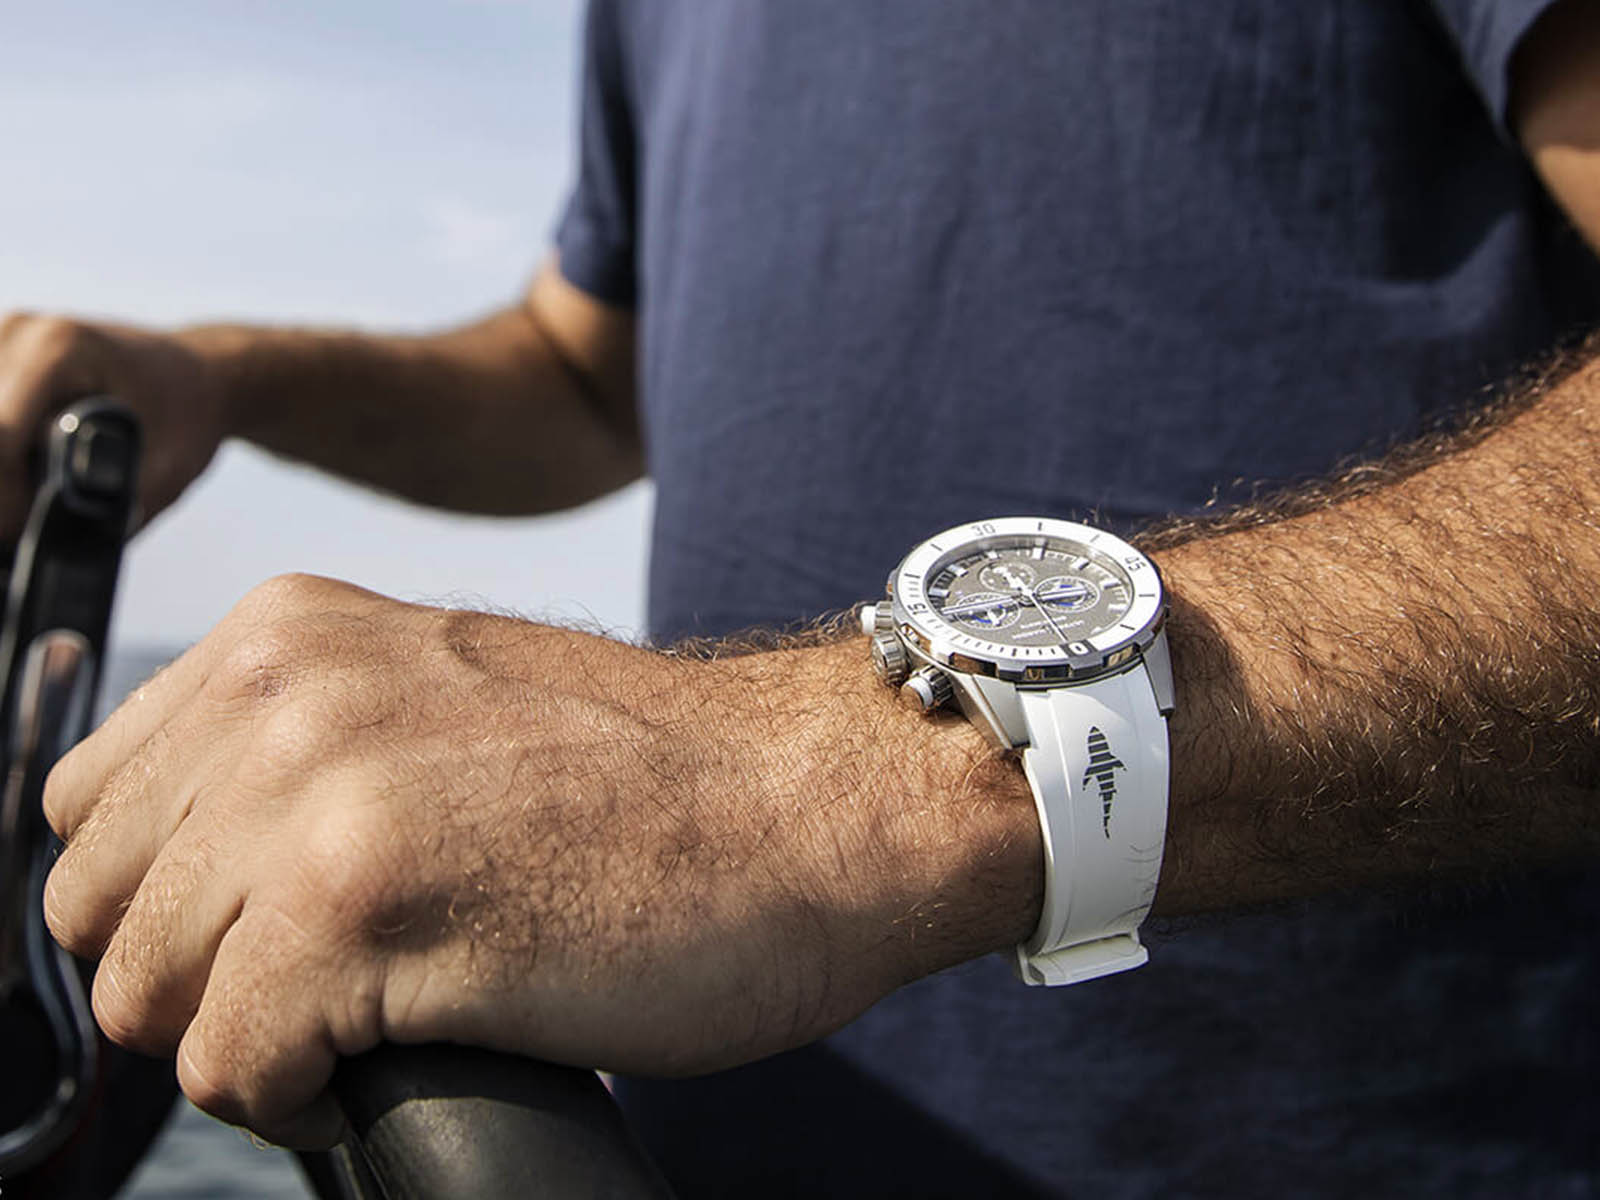 ulysse-nardin-diver-chronograph-44mm-limited-edition-great-white-4.jpg